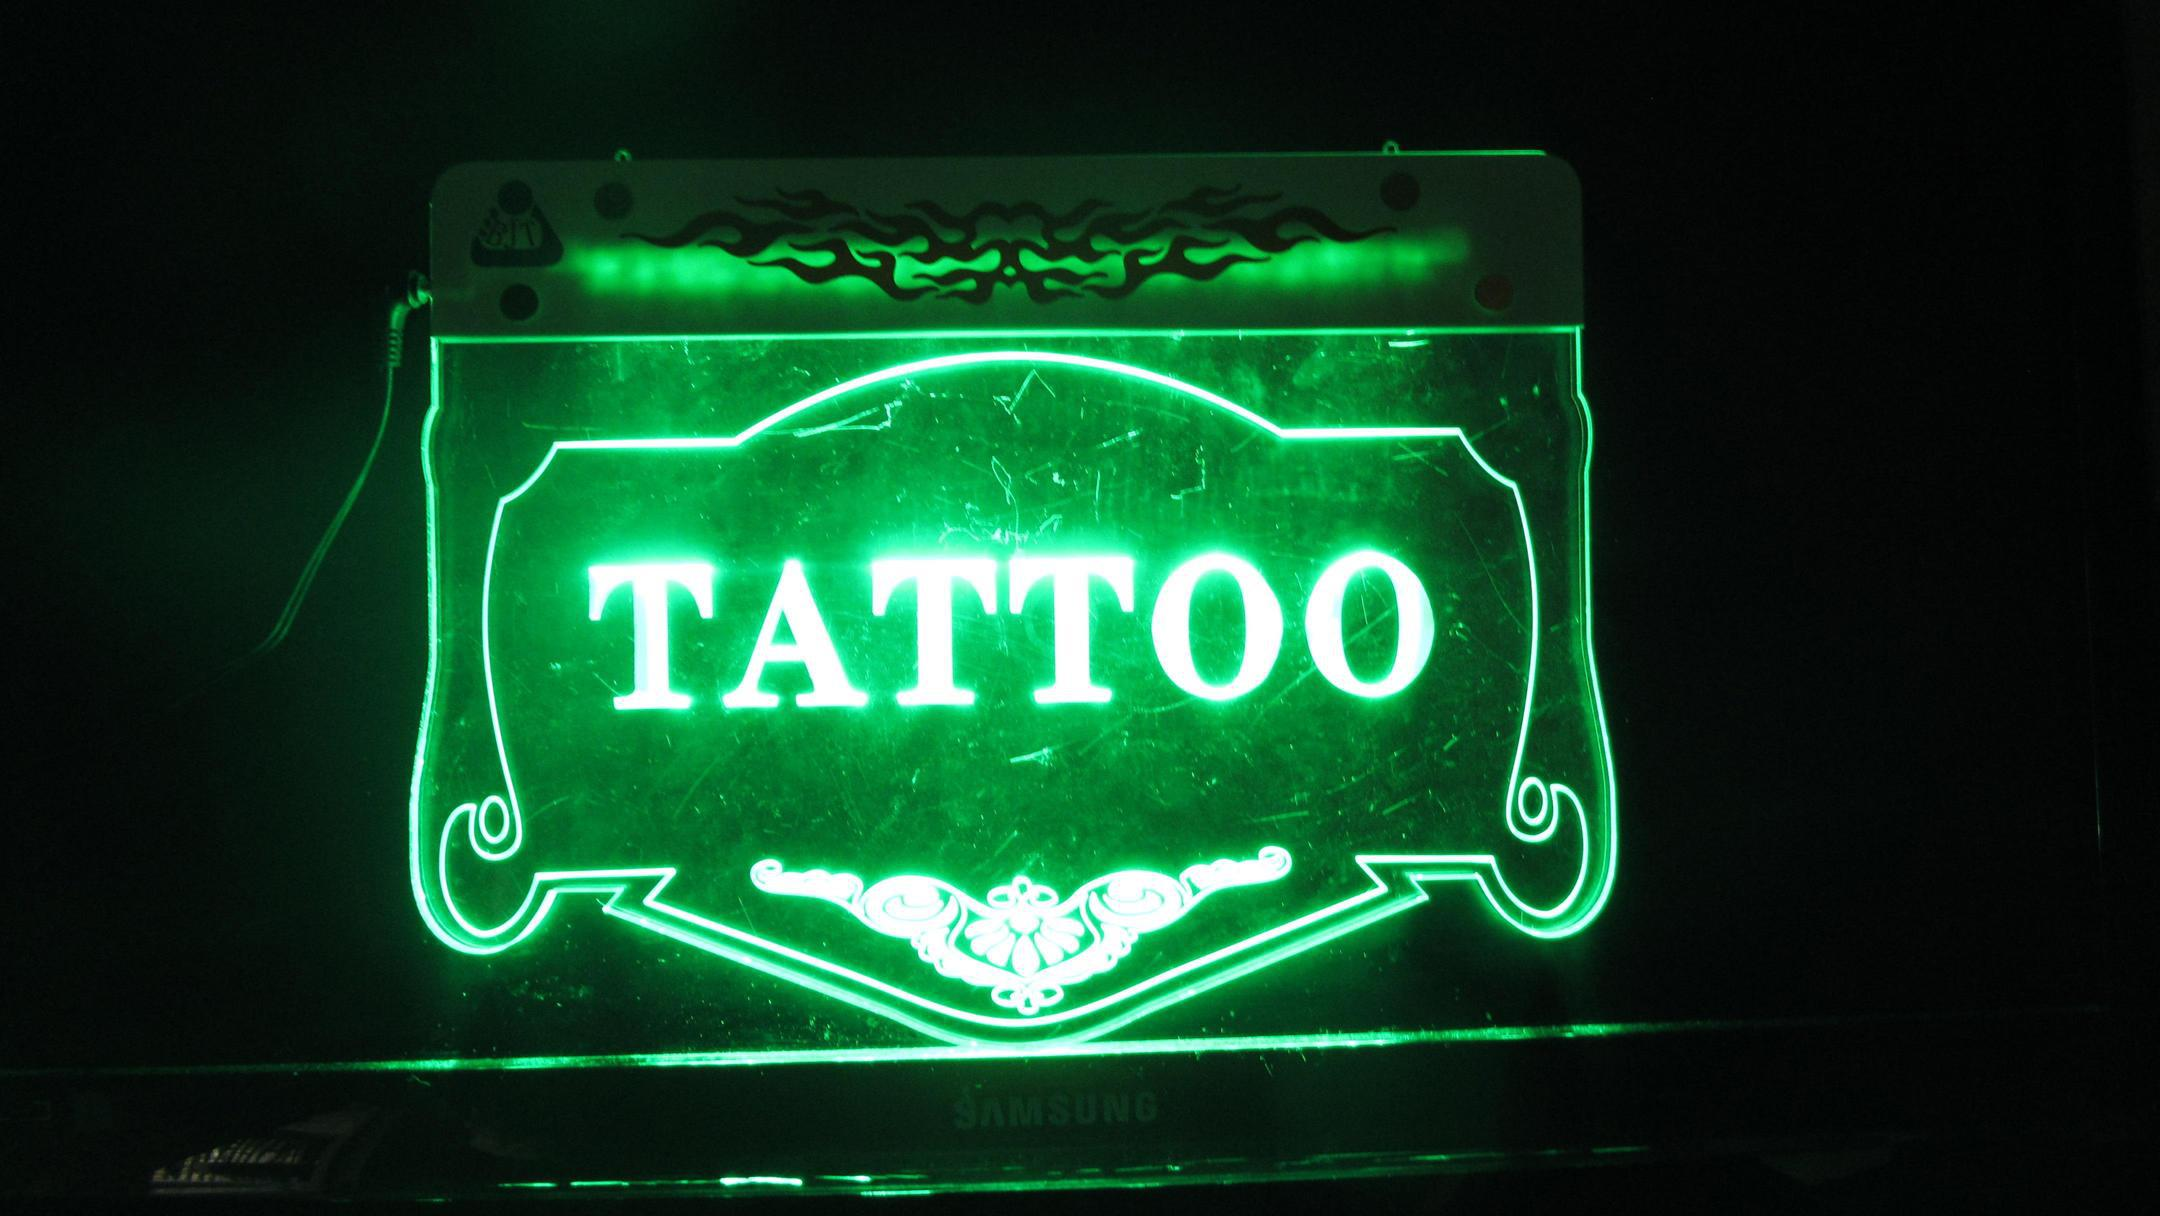 LED Tattoo Shop...